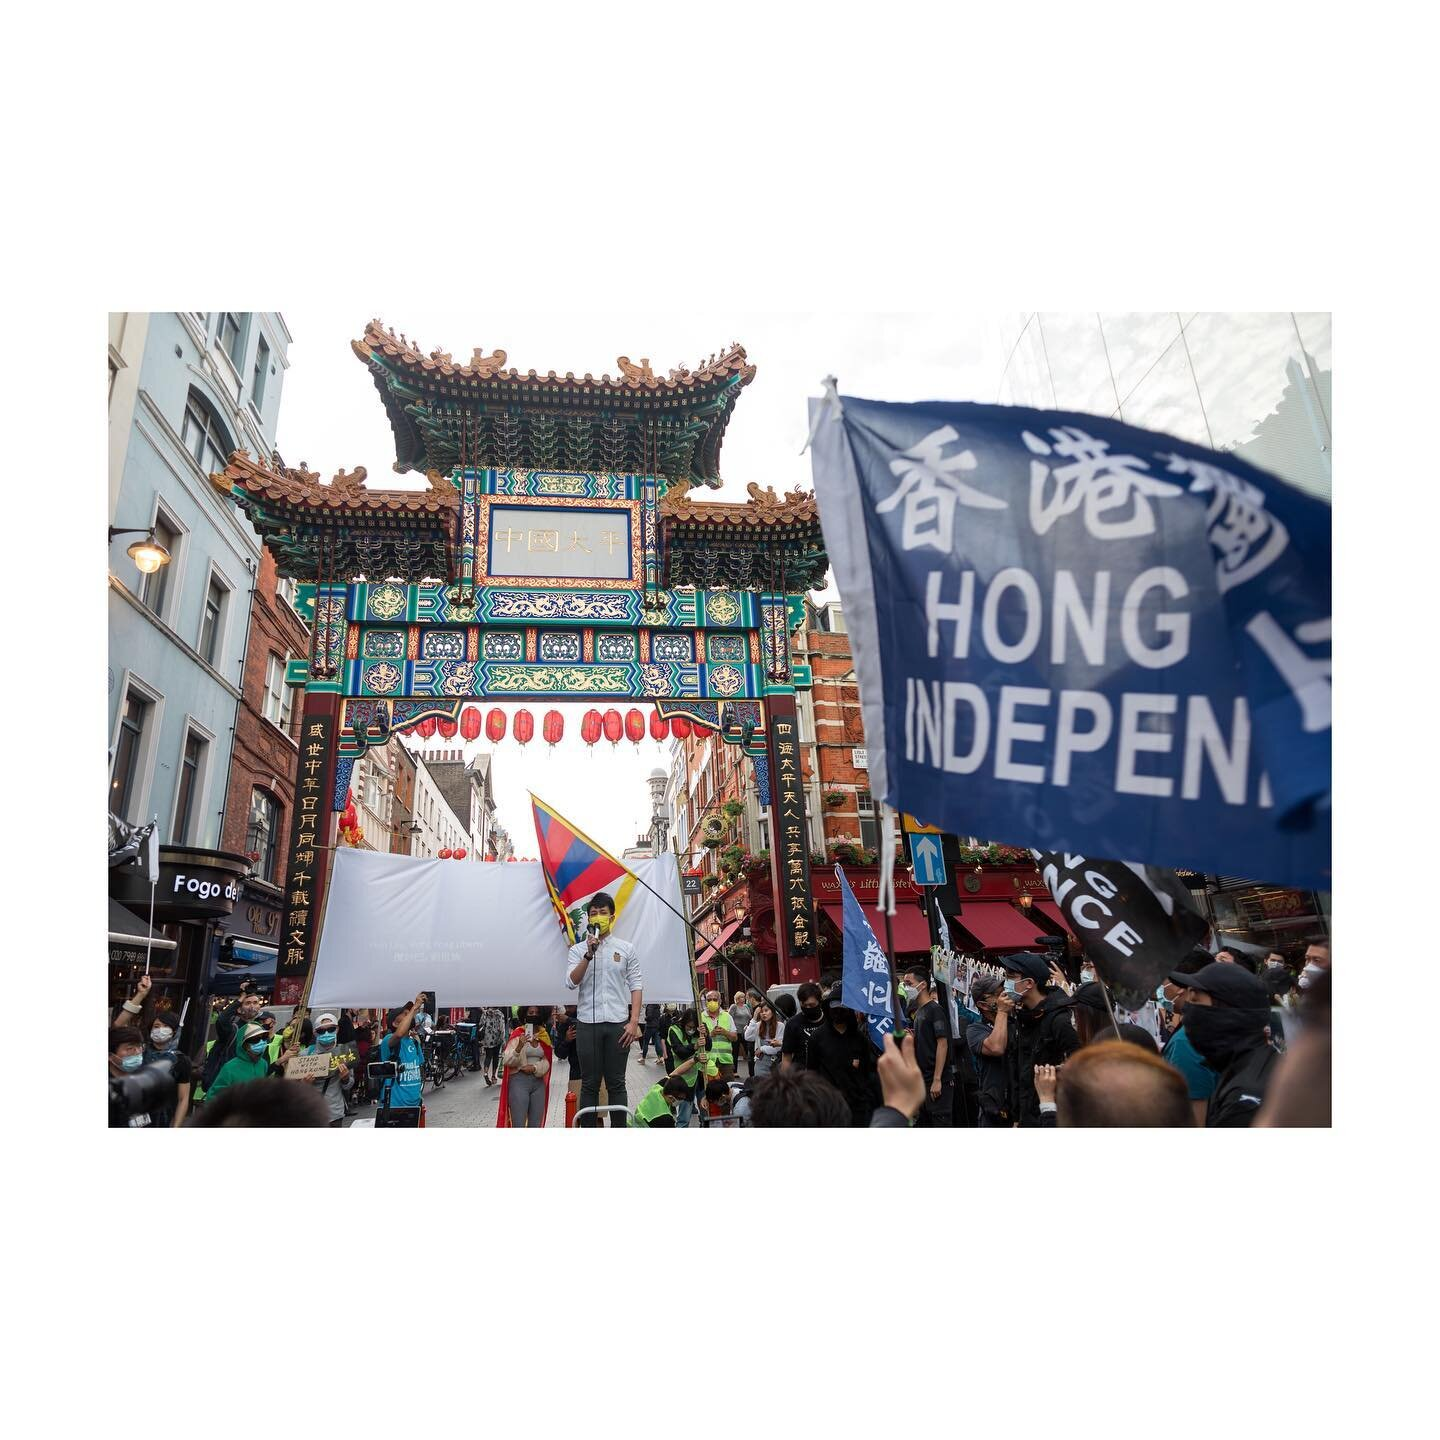 Photojournalism on @bbcnews   1st July in China Town - the Hong Kong diaspora was seen gathering, led by @hkaid.uk, at Chinatown to express solidarity against the Chinese Communist Party, in light of the passing of the National Security Law. Hong Konger activist-in-exile @finnlau_cd, founder of @standwithhk_ ,was seen giving a speech during the rally.  #londonphotographer #londonphotography #londonphotojournalist #ukphotogtapher #ukphotojournalist #photojournalist #photojournalism #documentaryphotography #documentaryphotographer #documentingbritain #womenstreetphotographers #londoncameraproject #womenphotograph